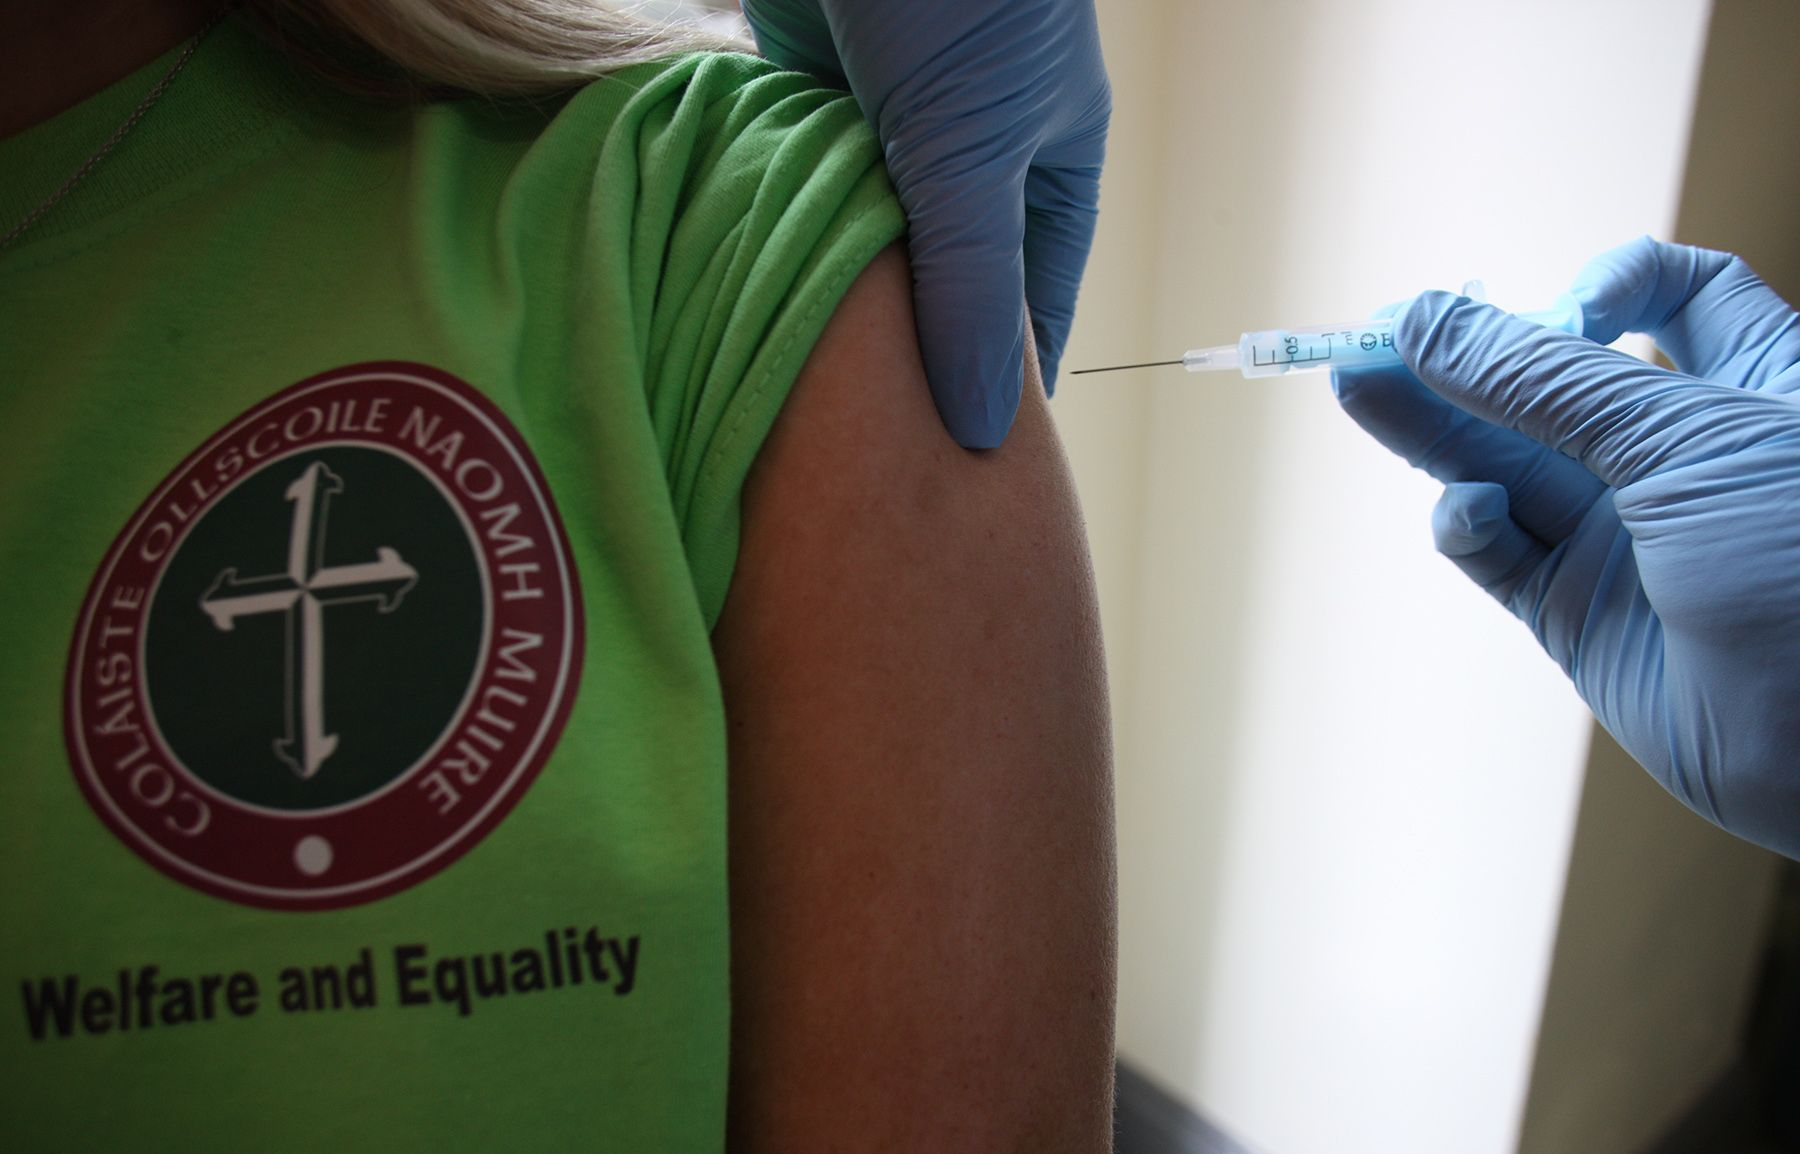 PROTECTION: The latest push to get people jabbed comes as 72 per cent of those in ICU are totally unvaccinated